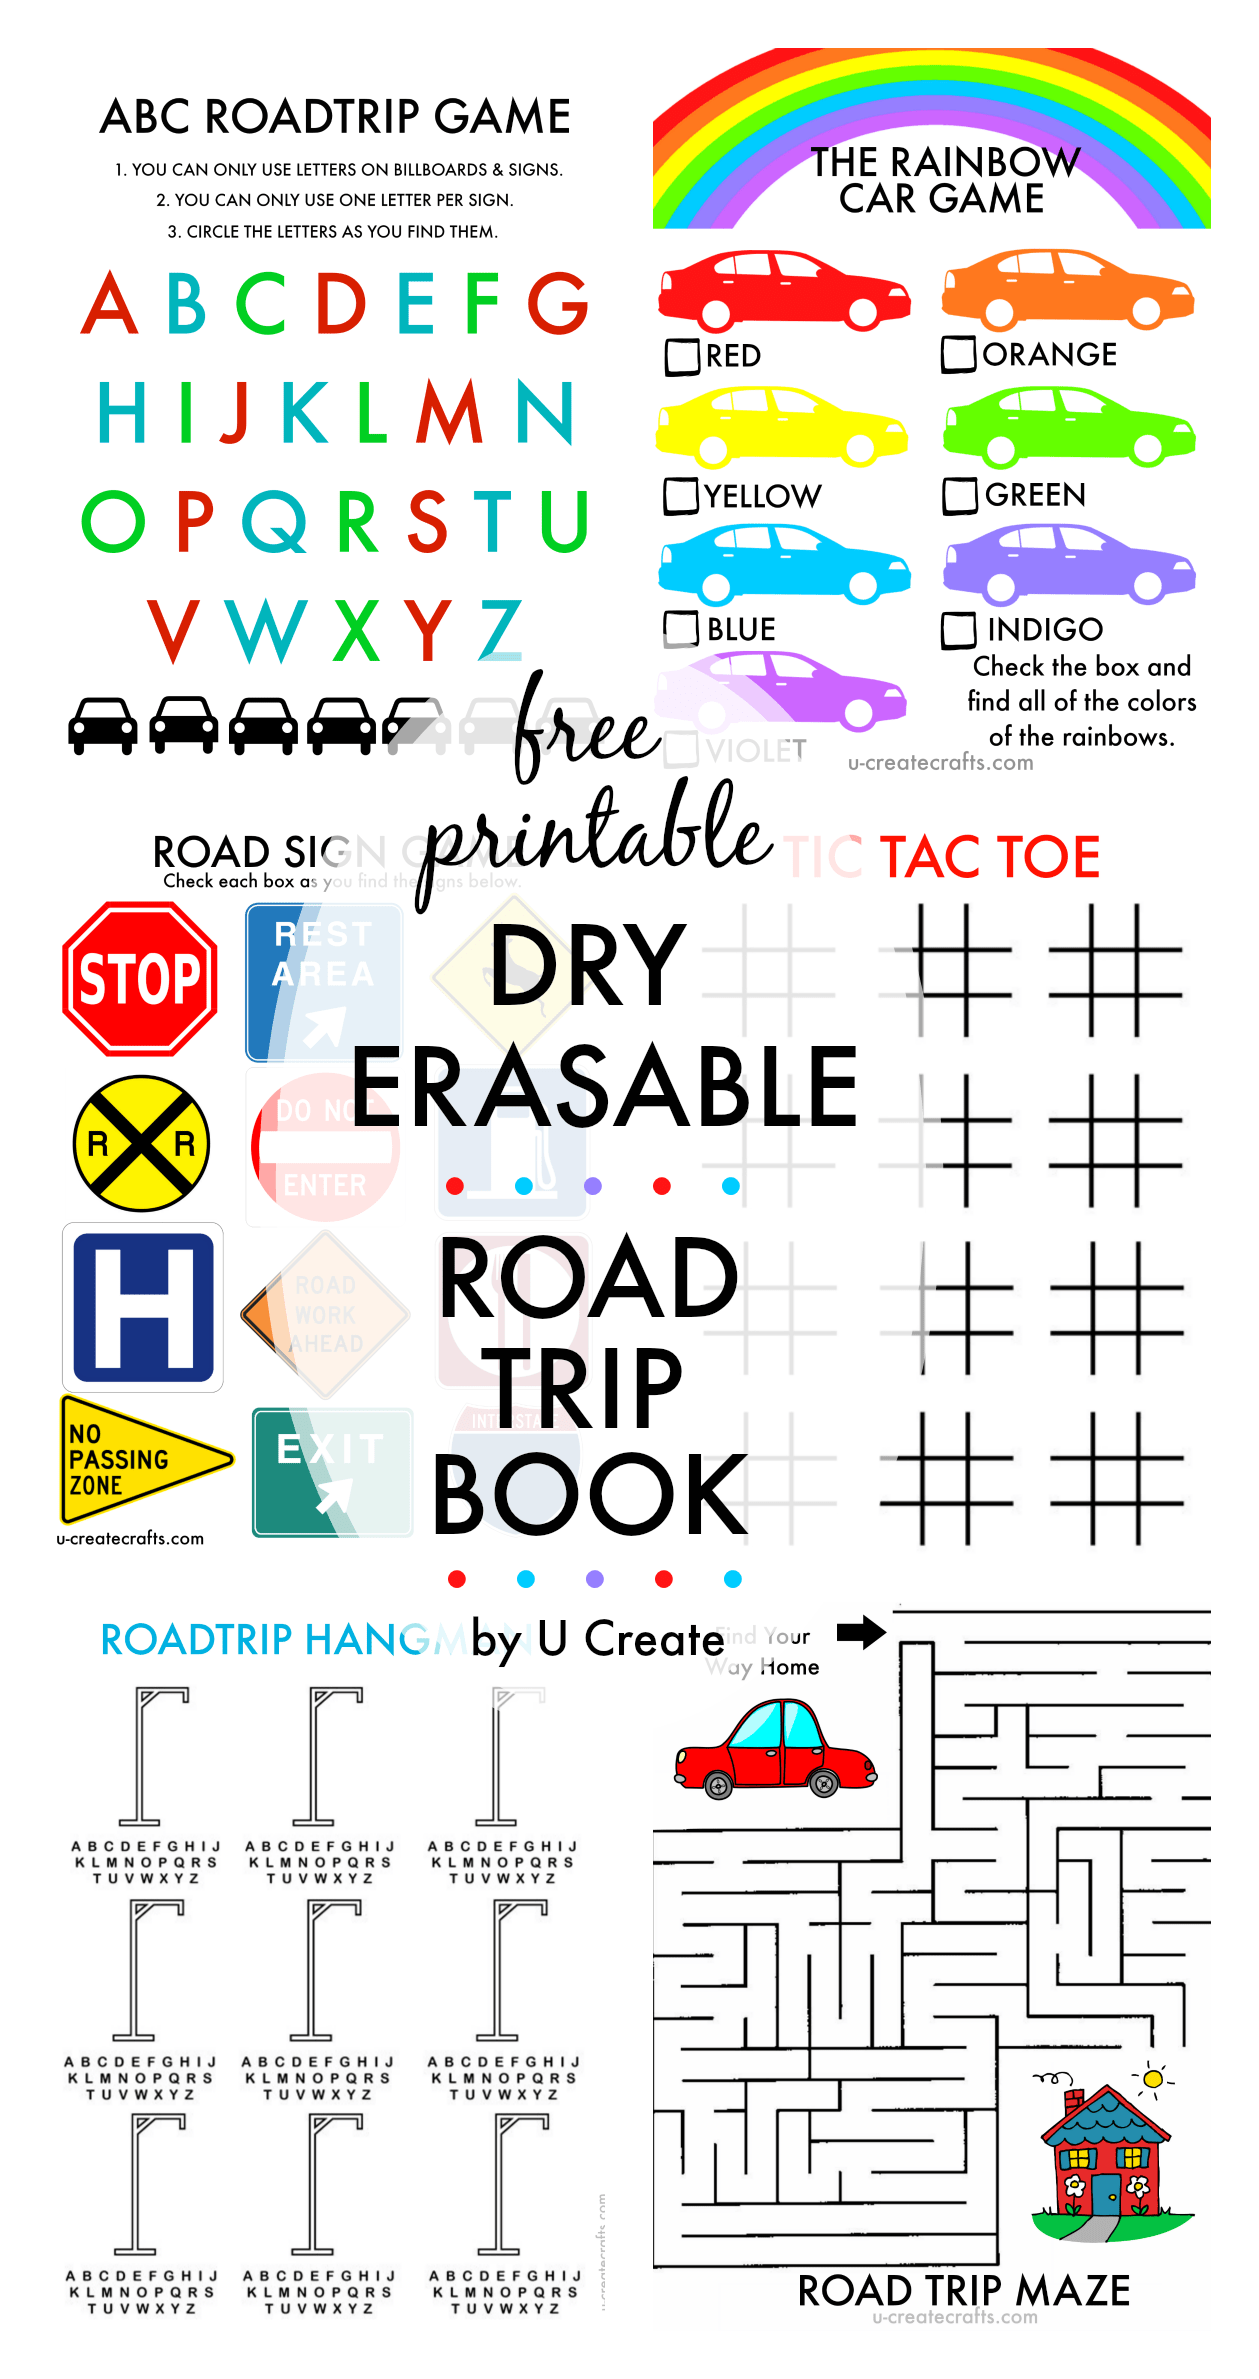 Free Printable Dry Erasable Road Trip Book For Kids